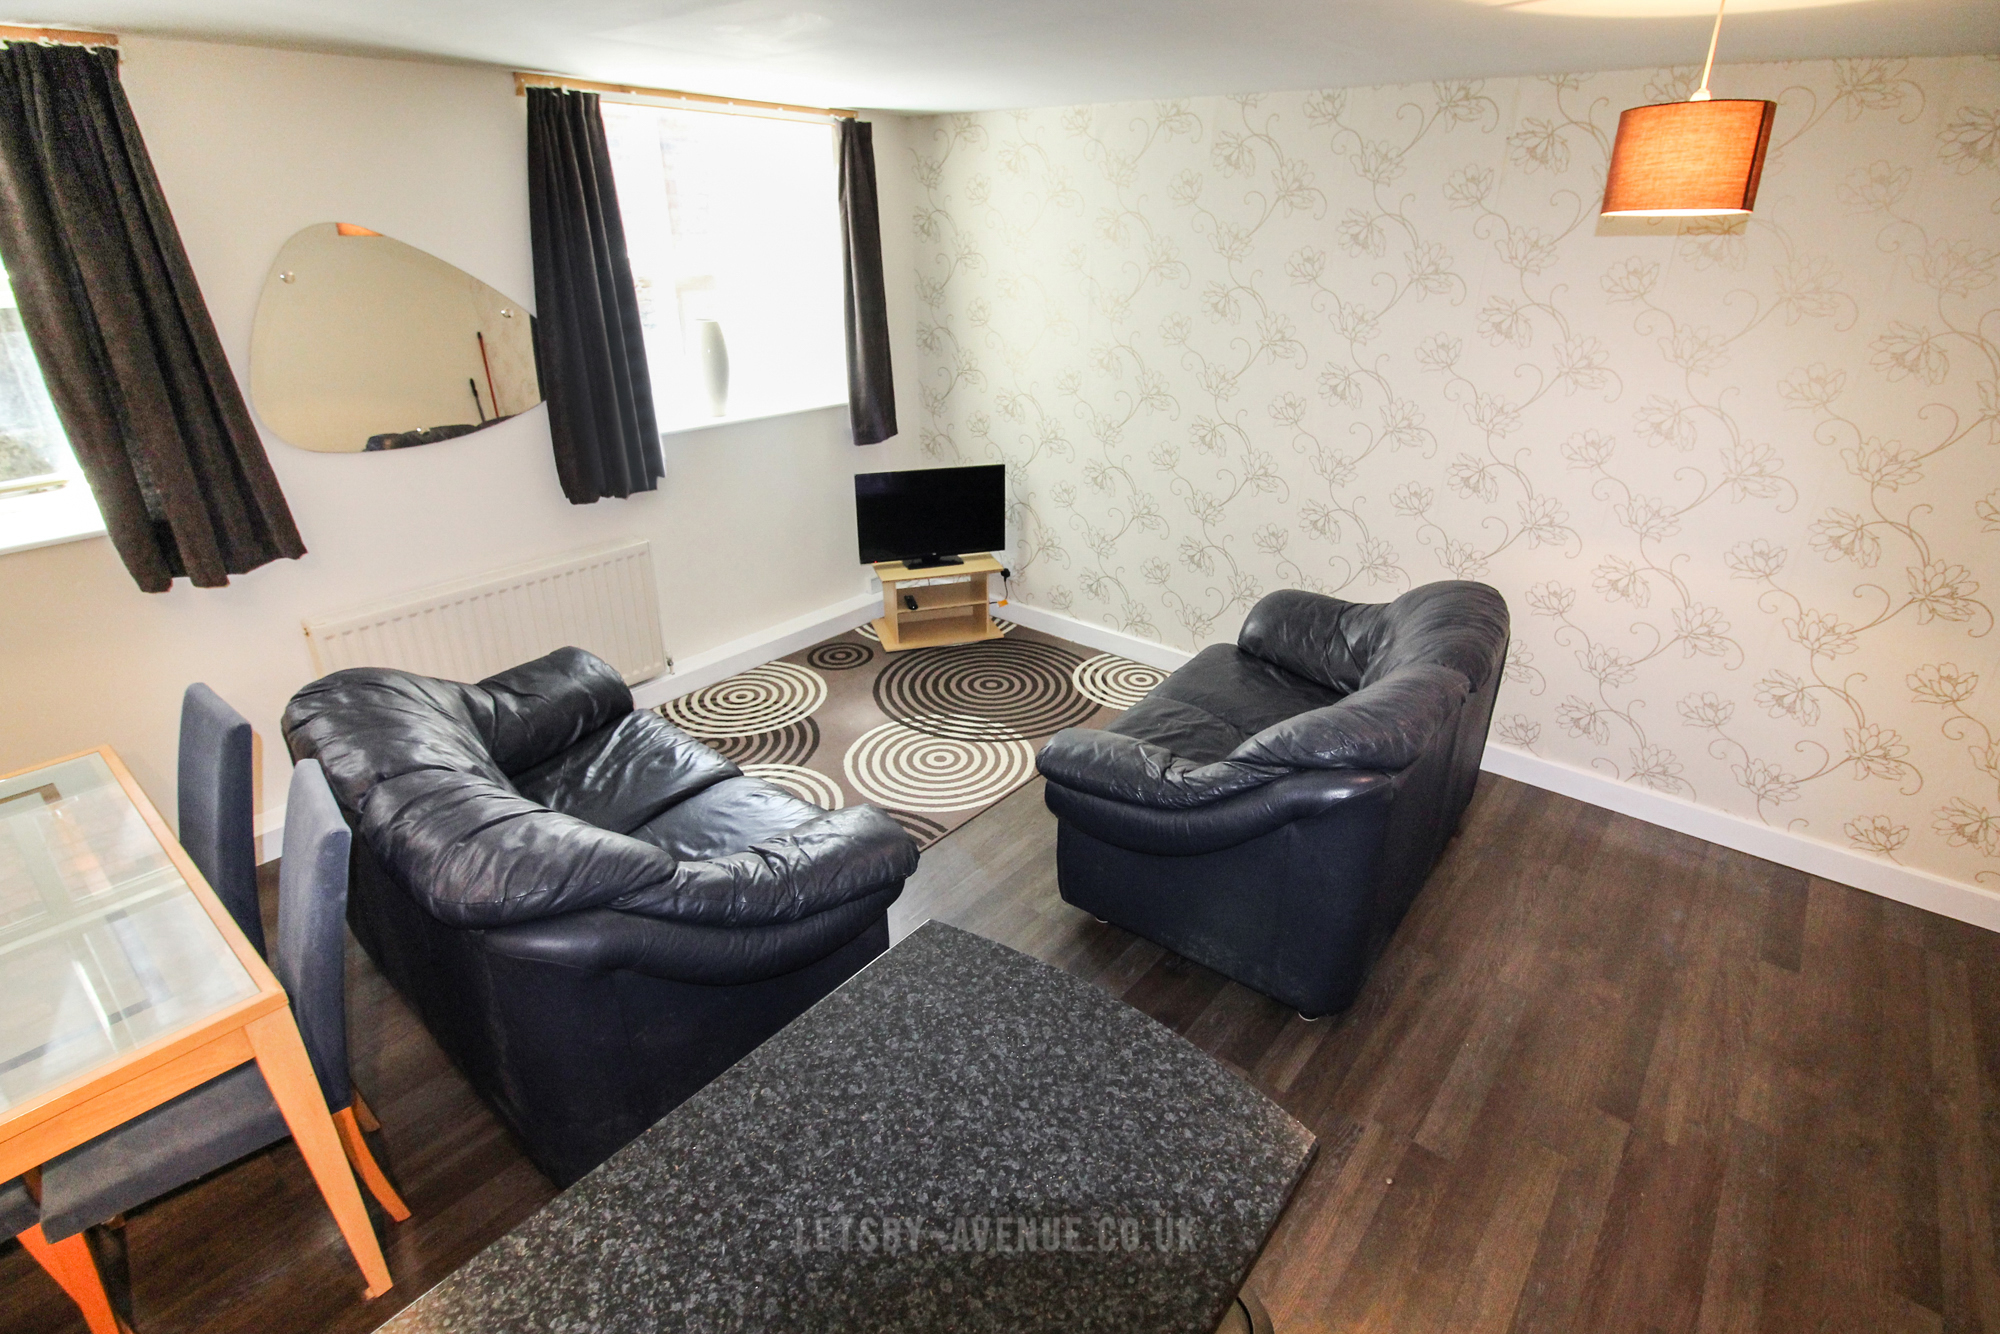 Lovely one bed apartment, Morley, Leeds photo 18715871